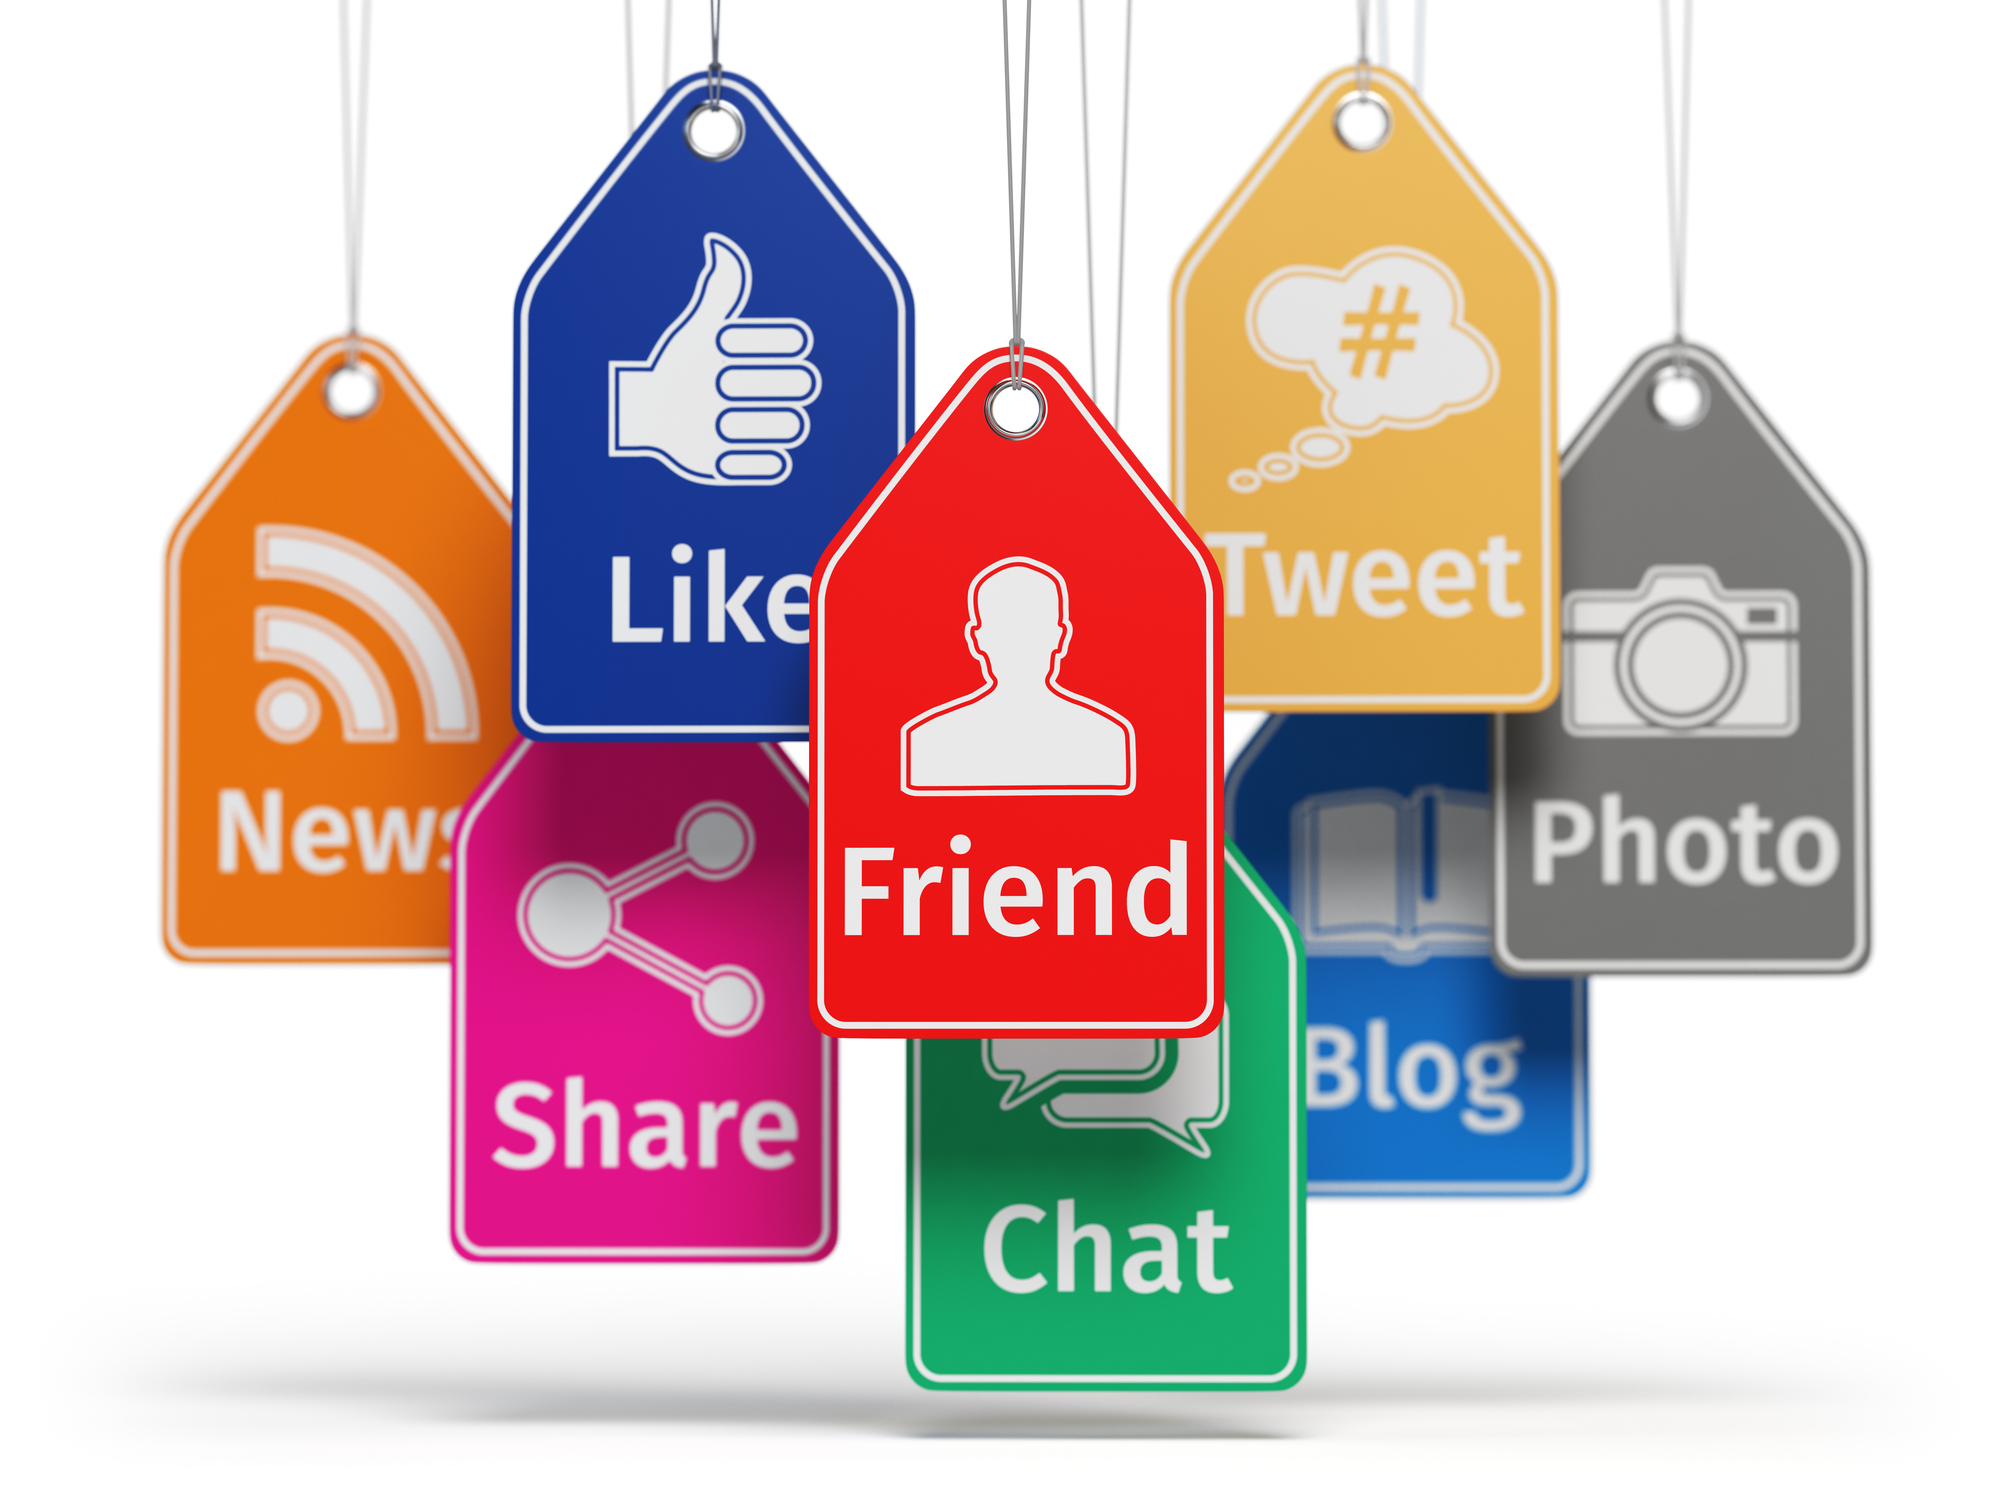 Like, Share and become a friend: Social Media Marketing für kleinere Budgets